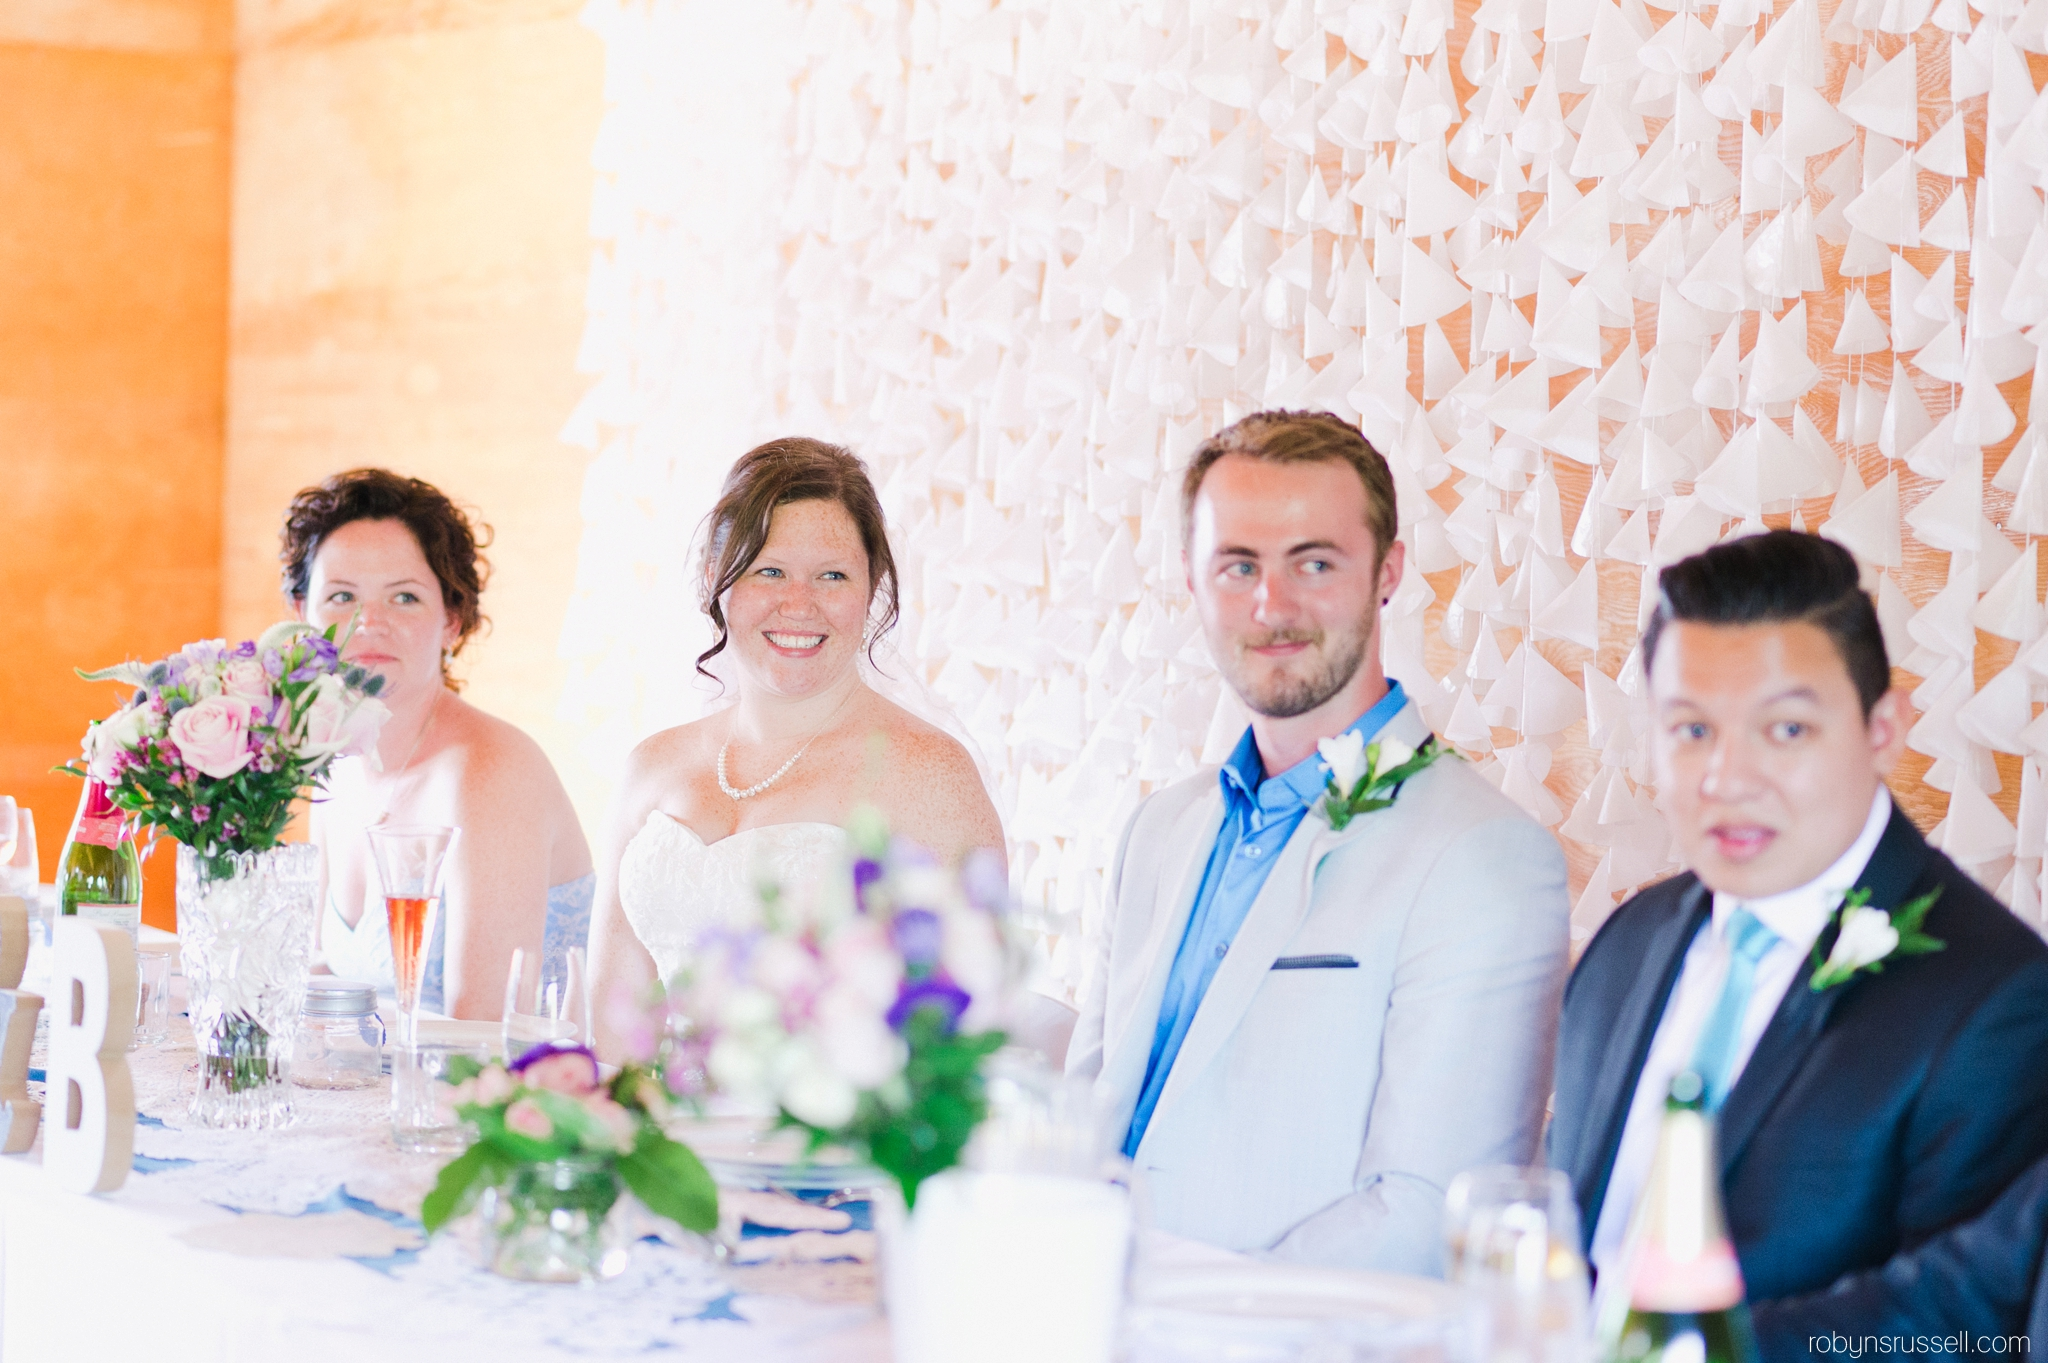 48-bride-and-groom-with-bridal-party-at-dinner.jpg